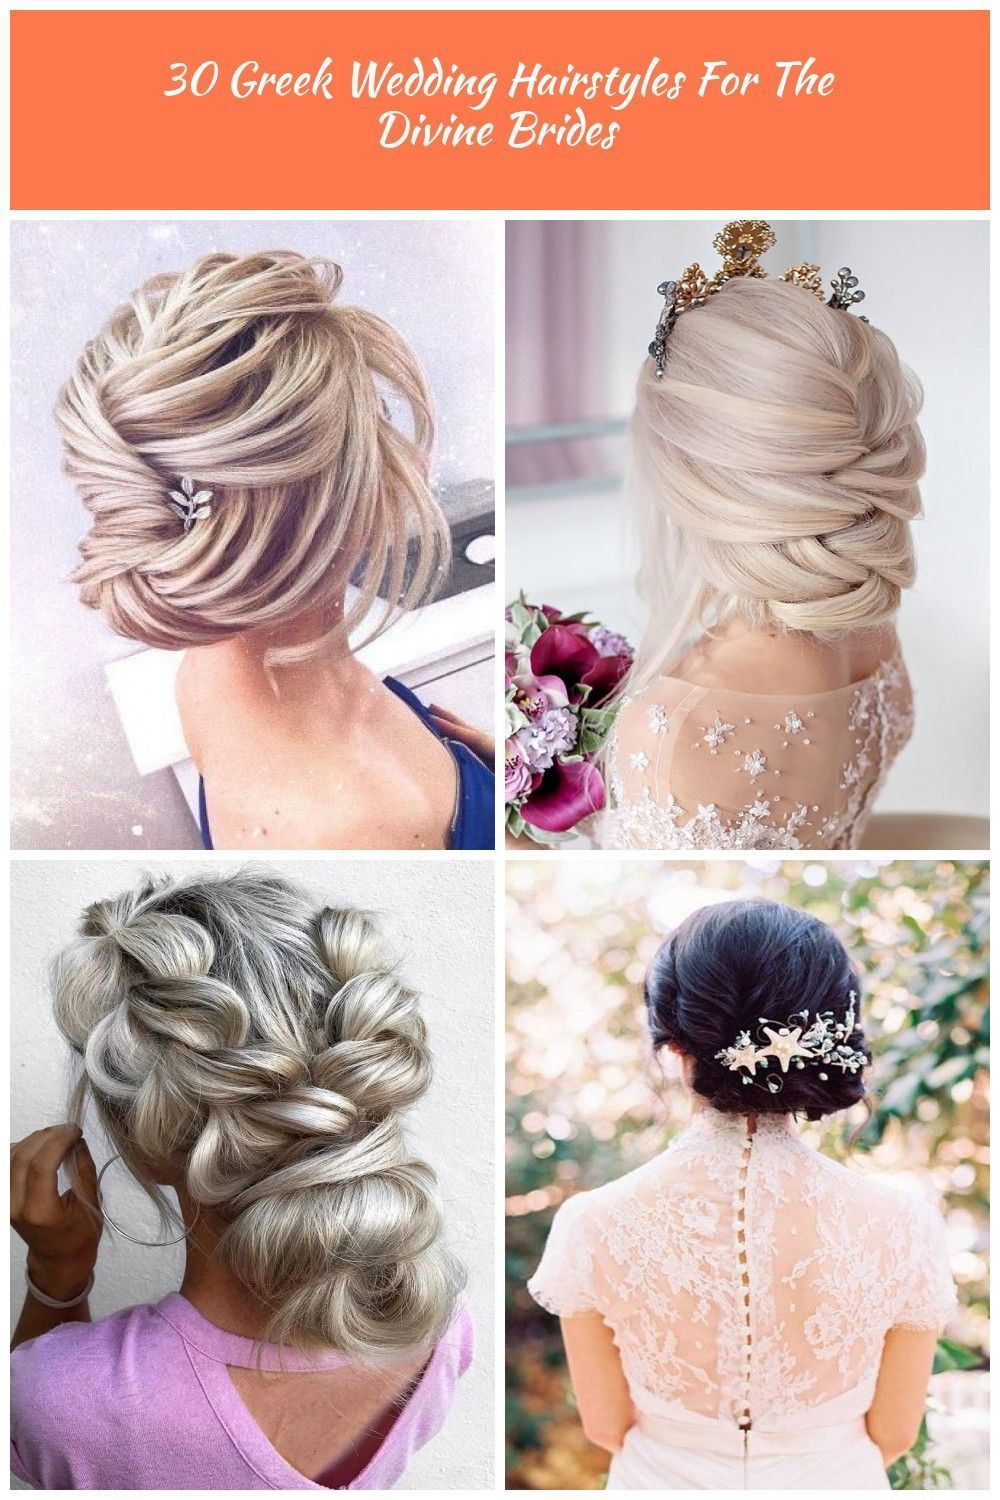 Greek Wedding Hairstyles For The Divine Brides ❤︎ Wedding planning ideas & inspiration. Wedding dresses, decor, and lots more. #weddingideas #wedding #bridal wedding hairstyles greek 30 Greek Wedding Hairstyles For The Divine Brides #greekweddingdresses Greek Wedding Hairstyles For The Divine Brides ❤︎ Wedding planning ideas & inspiration. Wedding dresses, decor, and lots more. #weddingideas #wedding #bridal wedding hairstyles greek 30 Greek Wedding Hairstyles For The Divine Brides #gree #greekweddingdresses